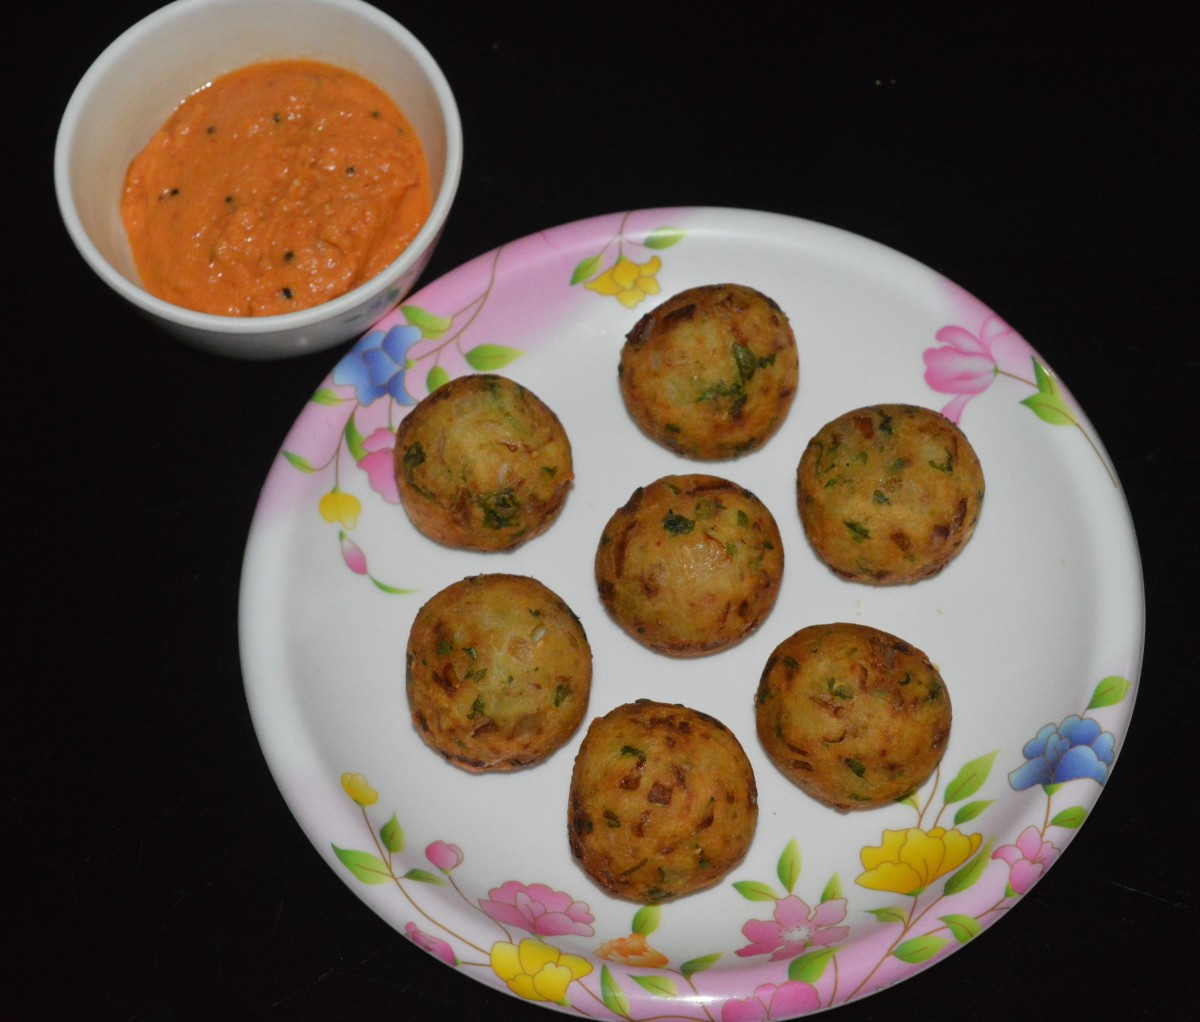 Serve with tomato sauce or chutney of your choice. Enjoy eating these delectable snacks.